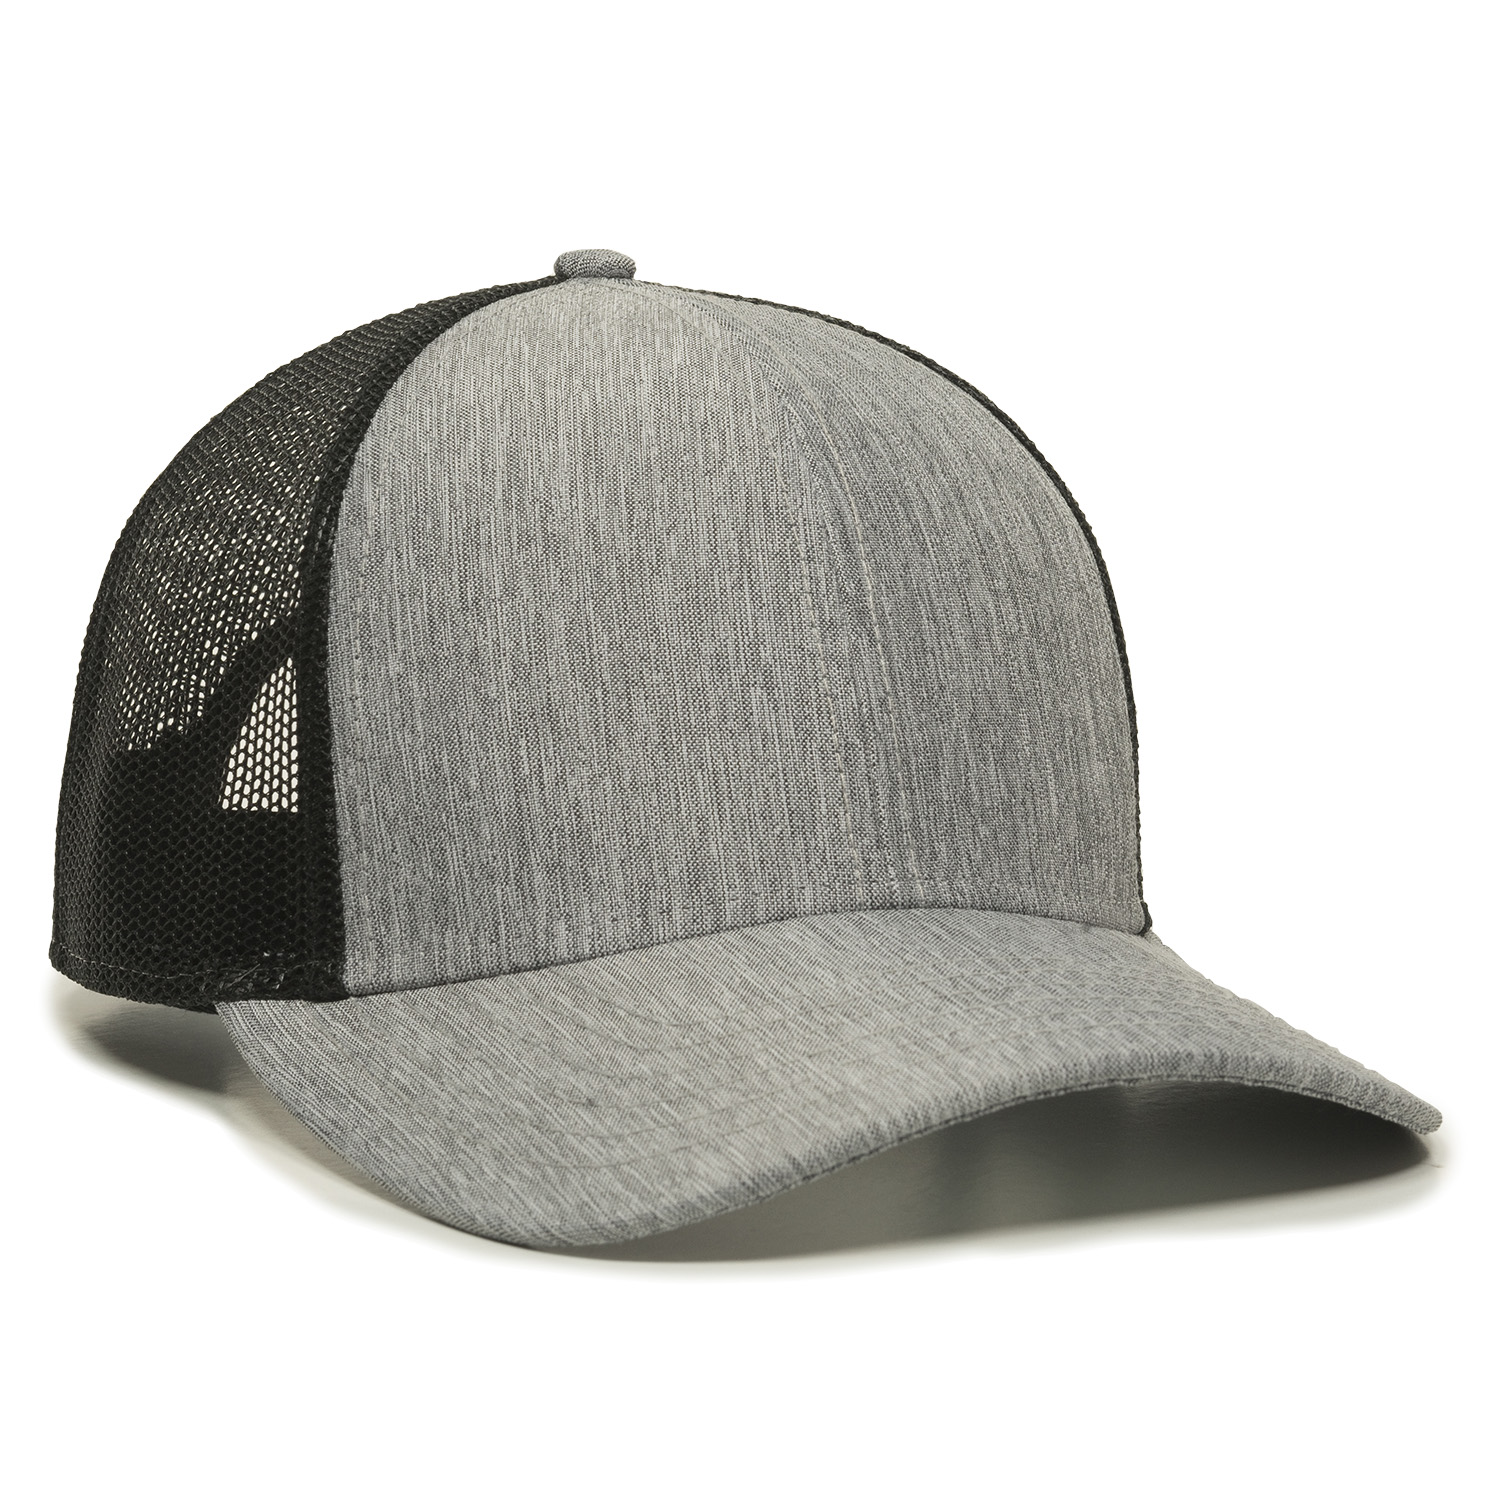 Heathered Grey/Black